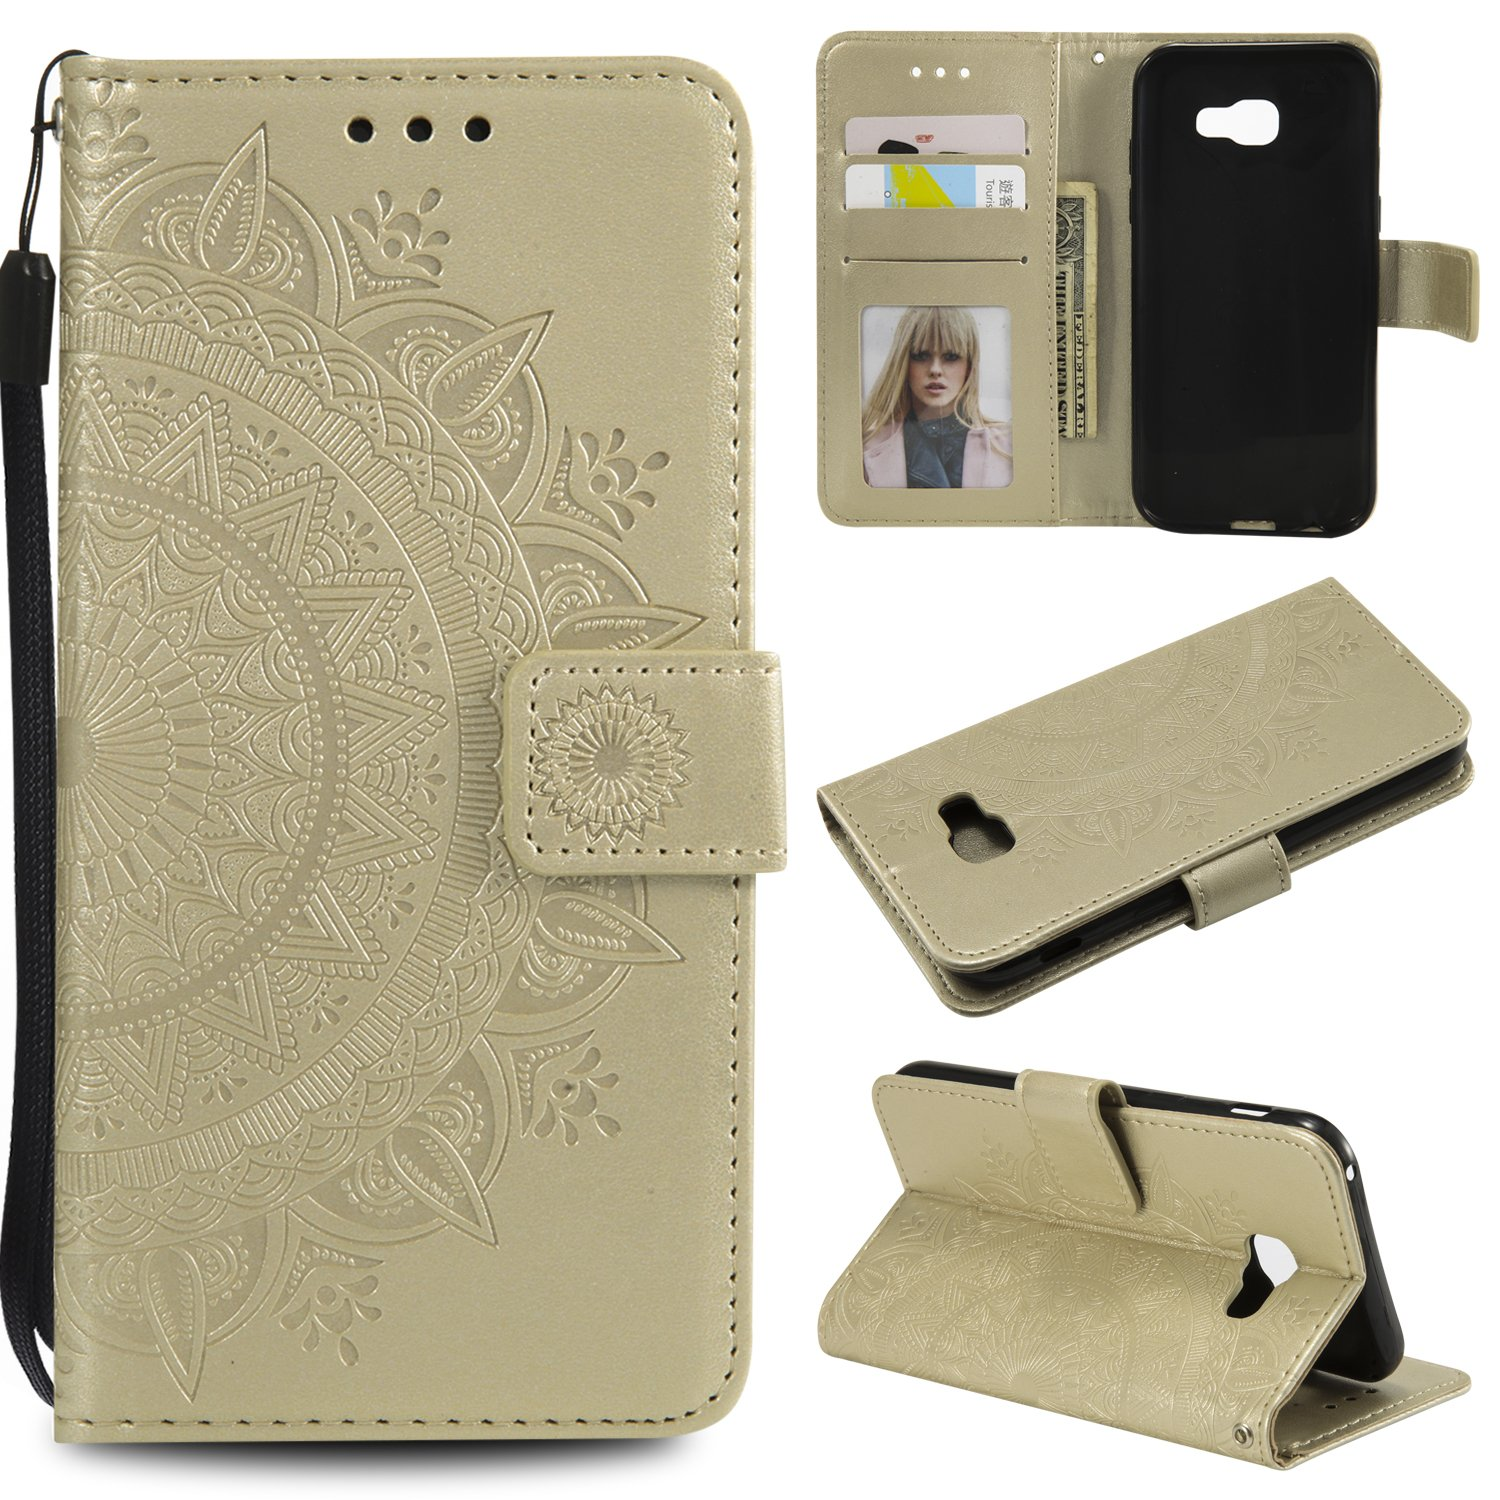 Galaxy A5 2017 Floral Wallet Case,Galaxy A5 2017 Strap Flip Case,Leecase Embossed Totem Flower Design Pu Leather Bookstyle Stand Flip Case for Samsung Galaxy A5 2017-Gold